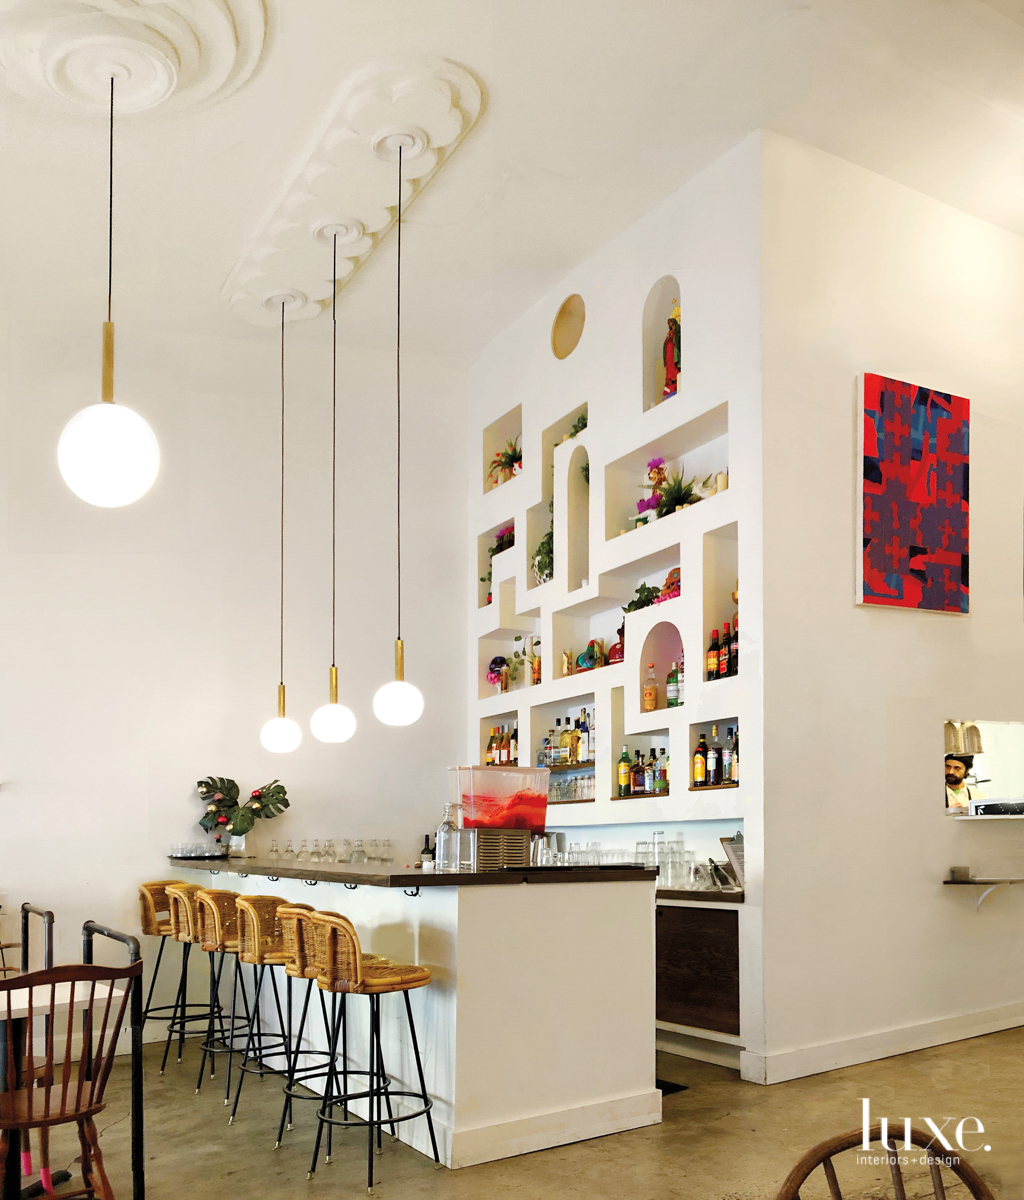 3 Pacific Northwest Spots Where Eclectic Interiors Meet Elevated Dining